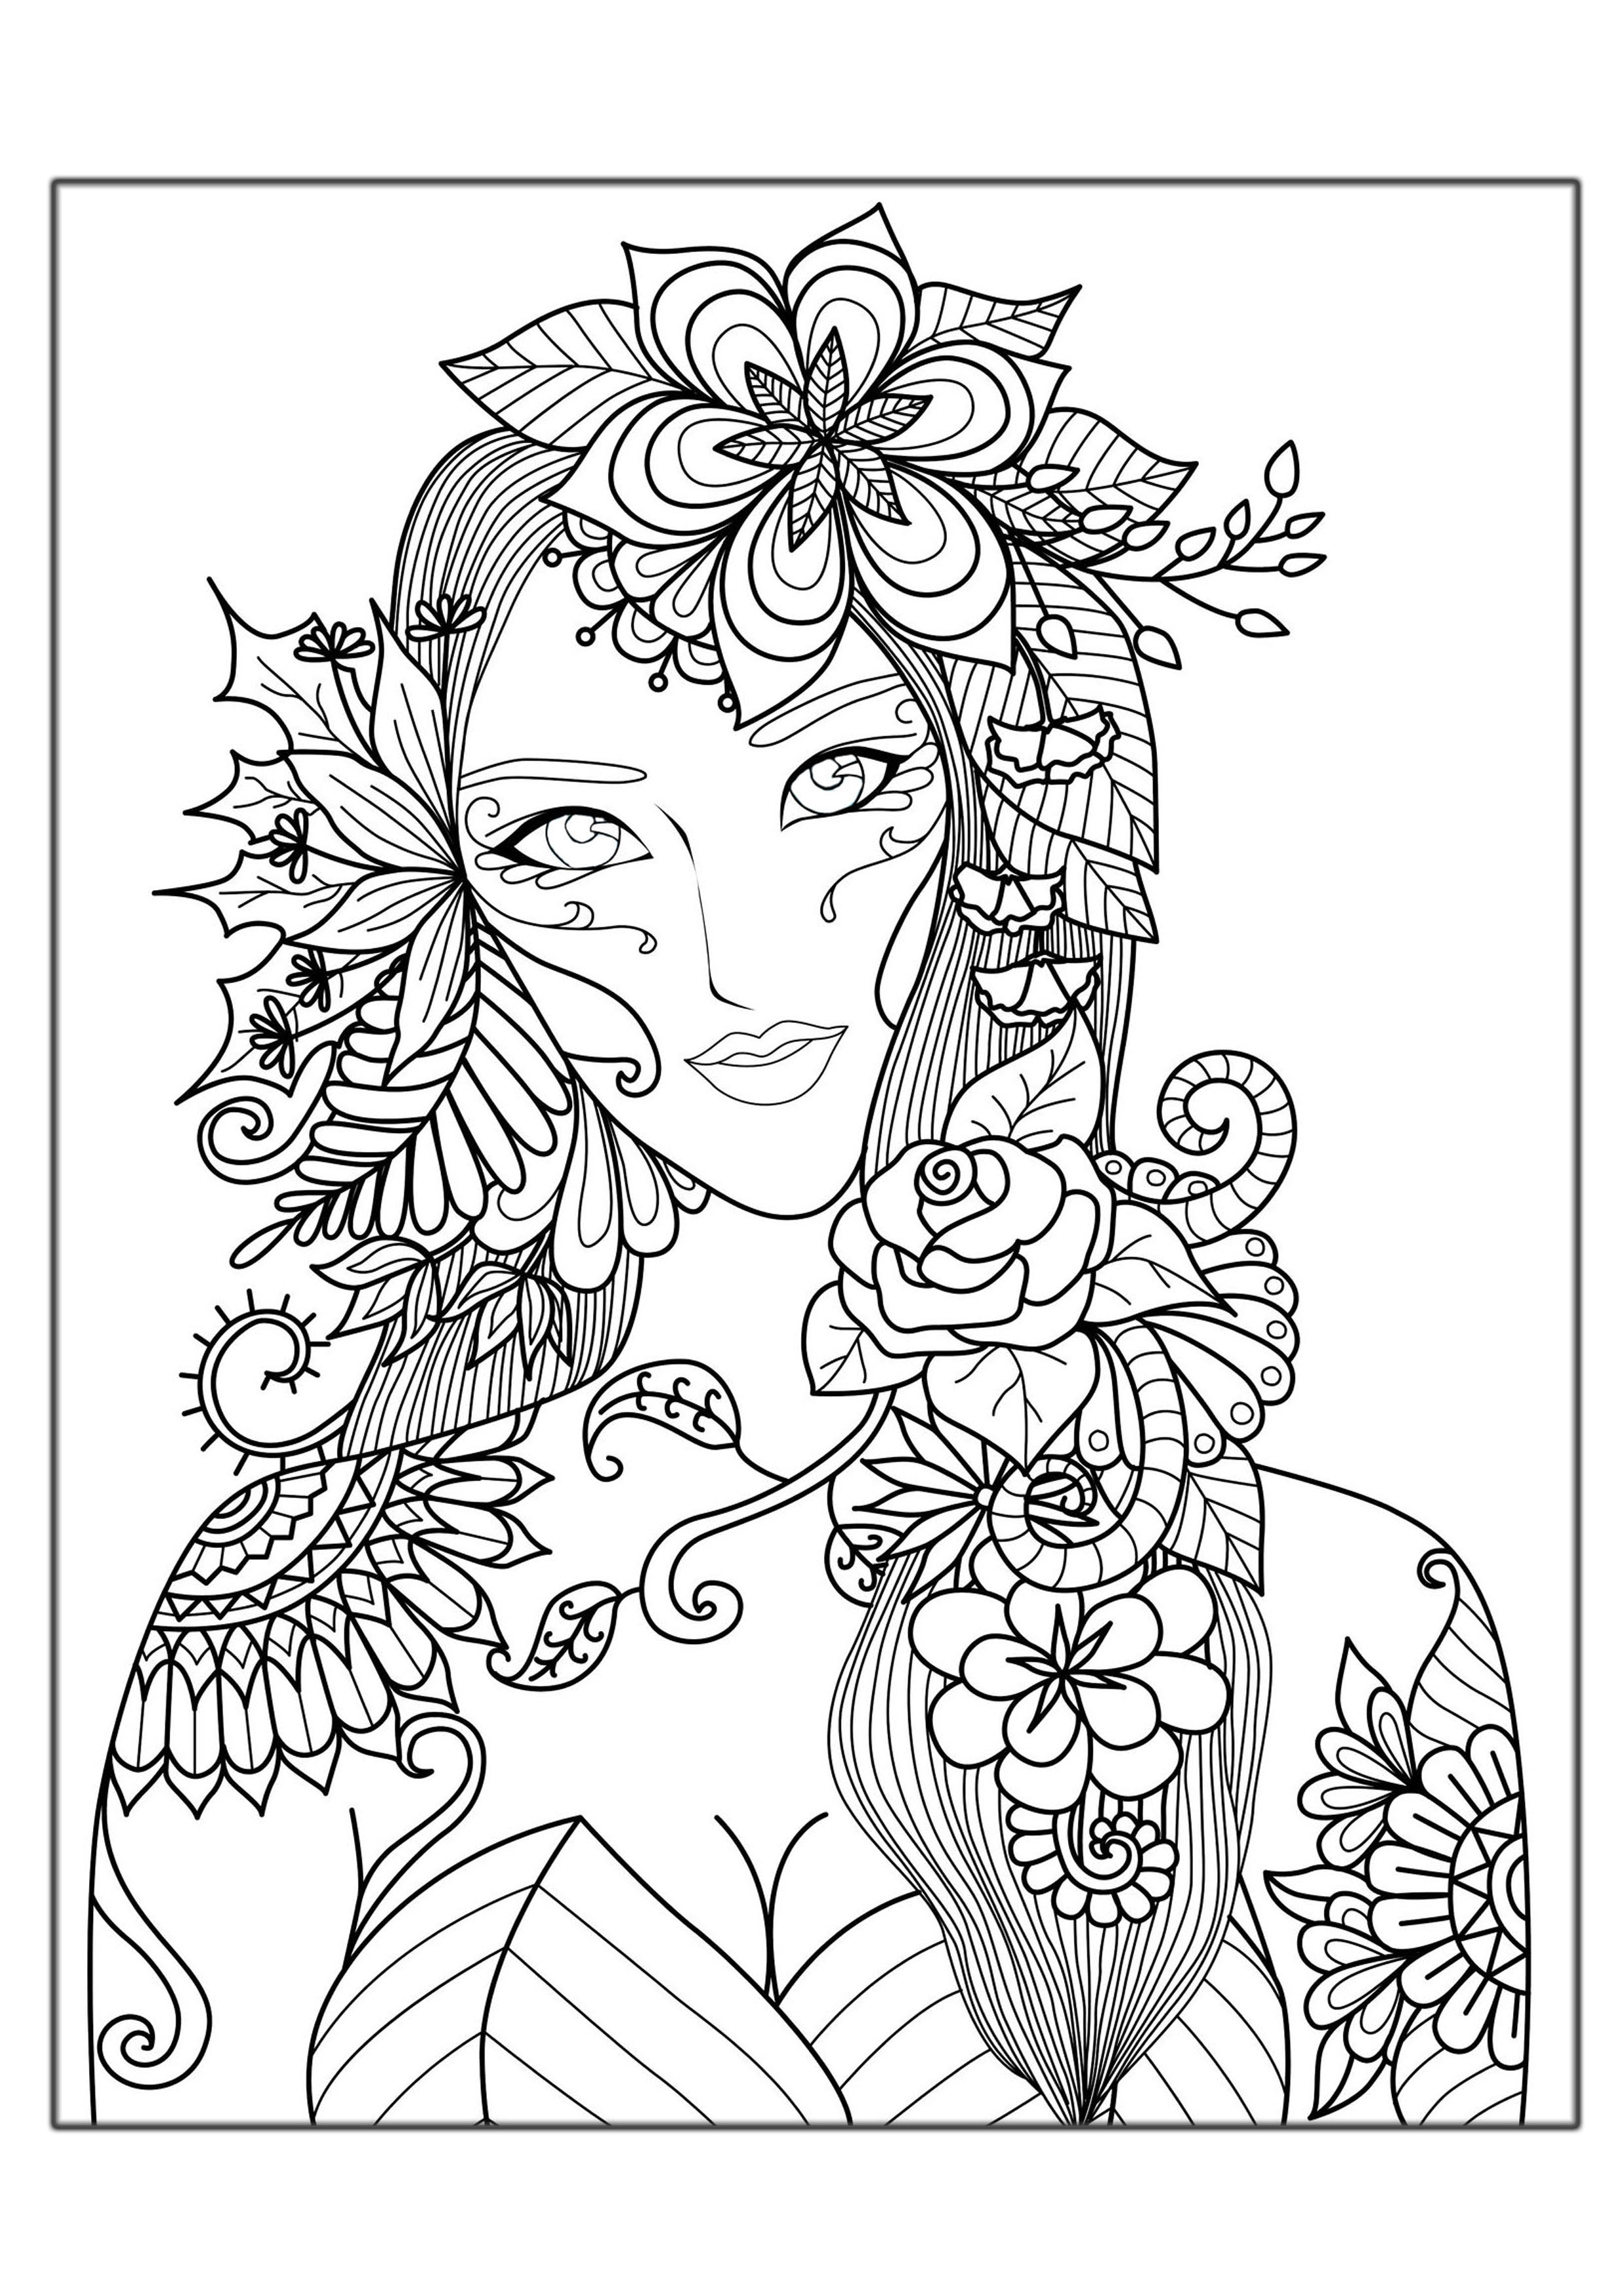 Hard Coloring Pages For Adults Best Coloring Pages For Kids